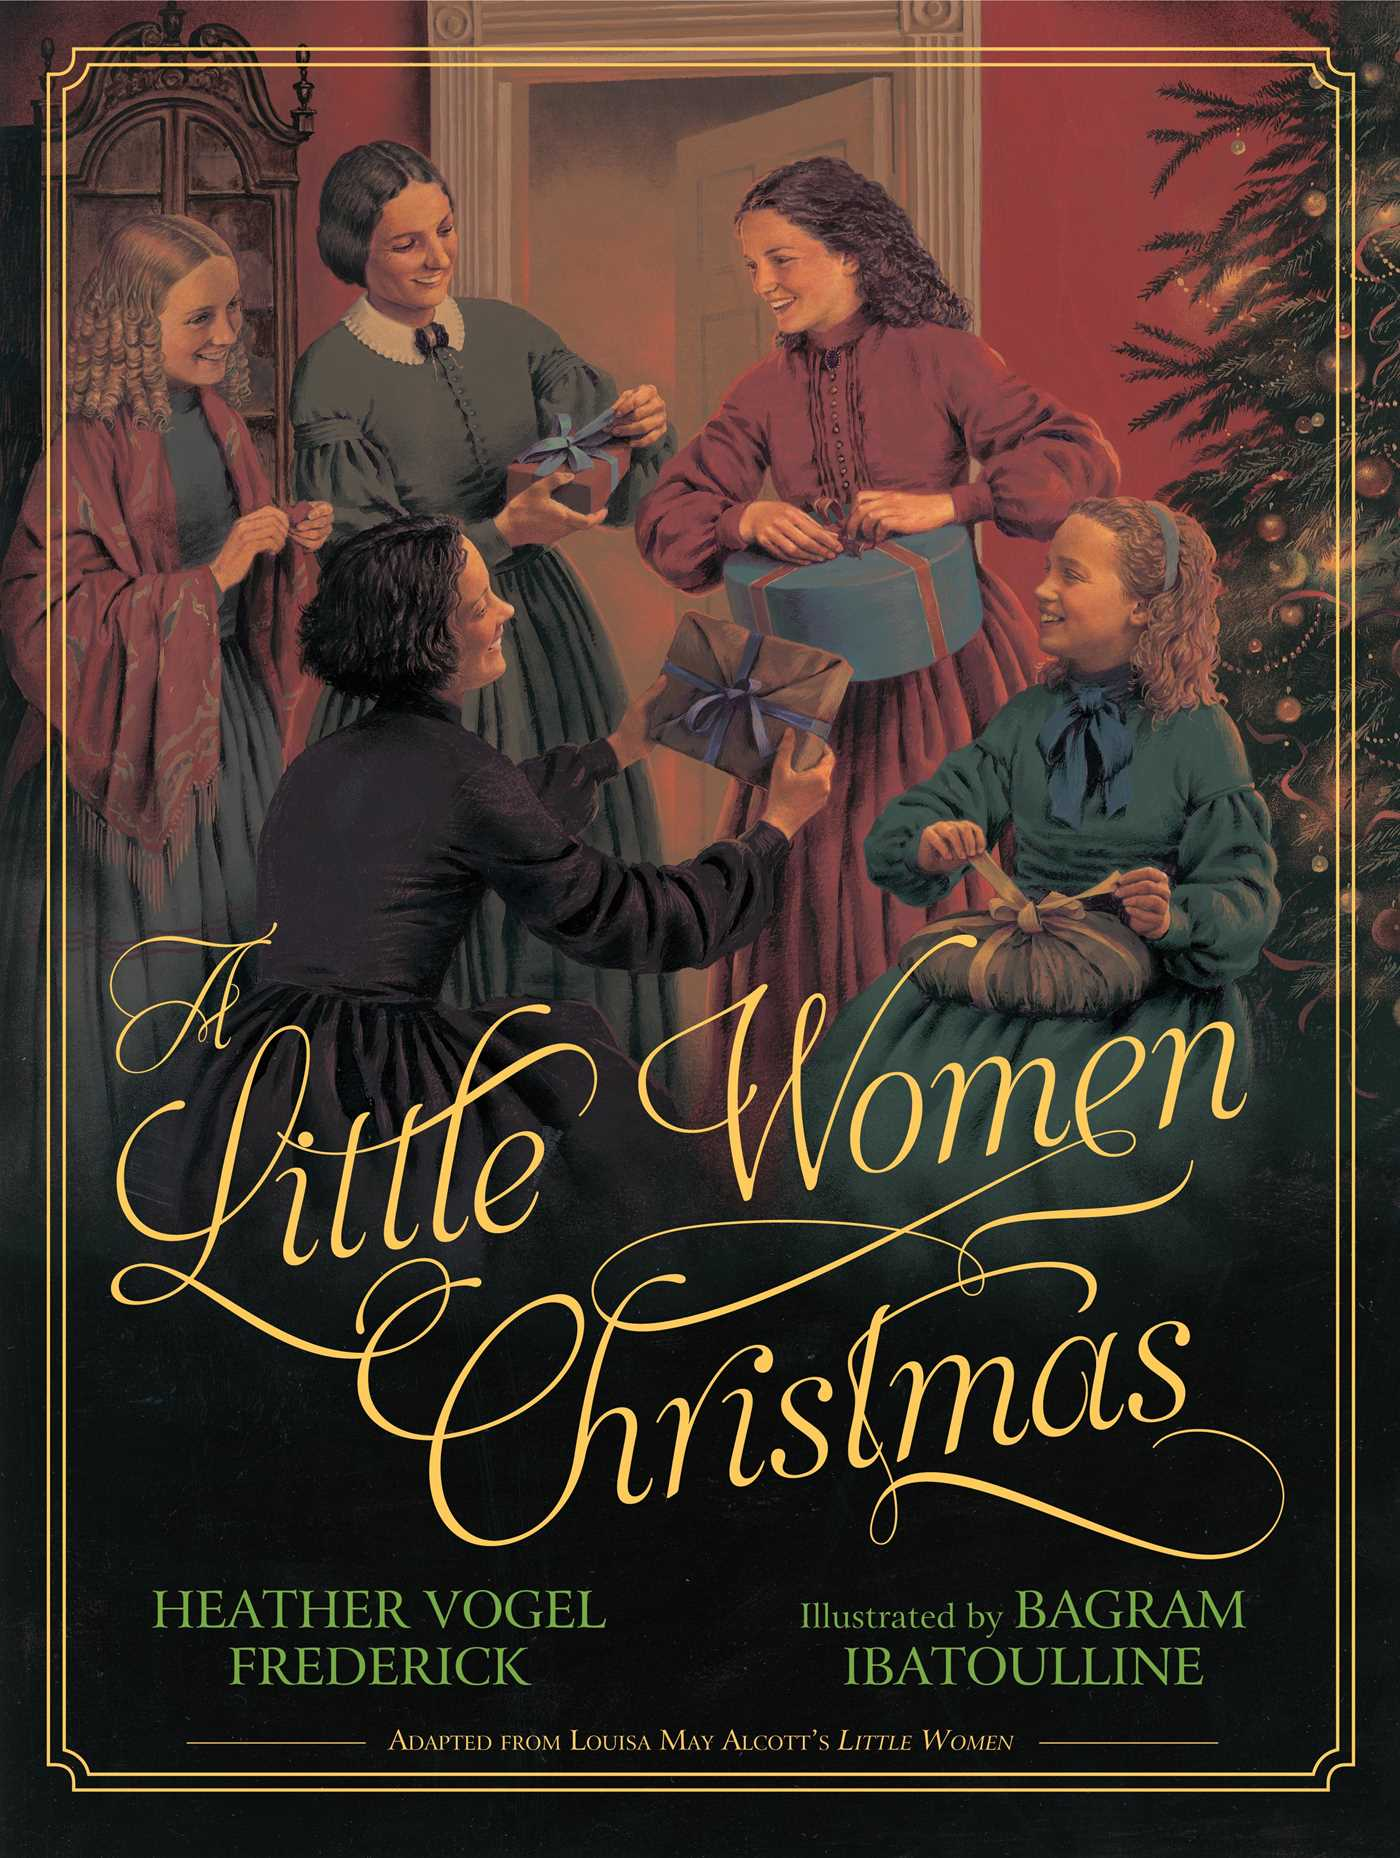 A little women christmas 9781442413597 hr